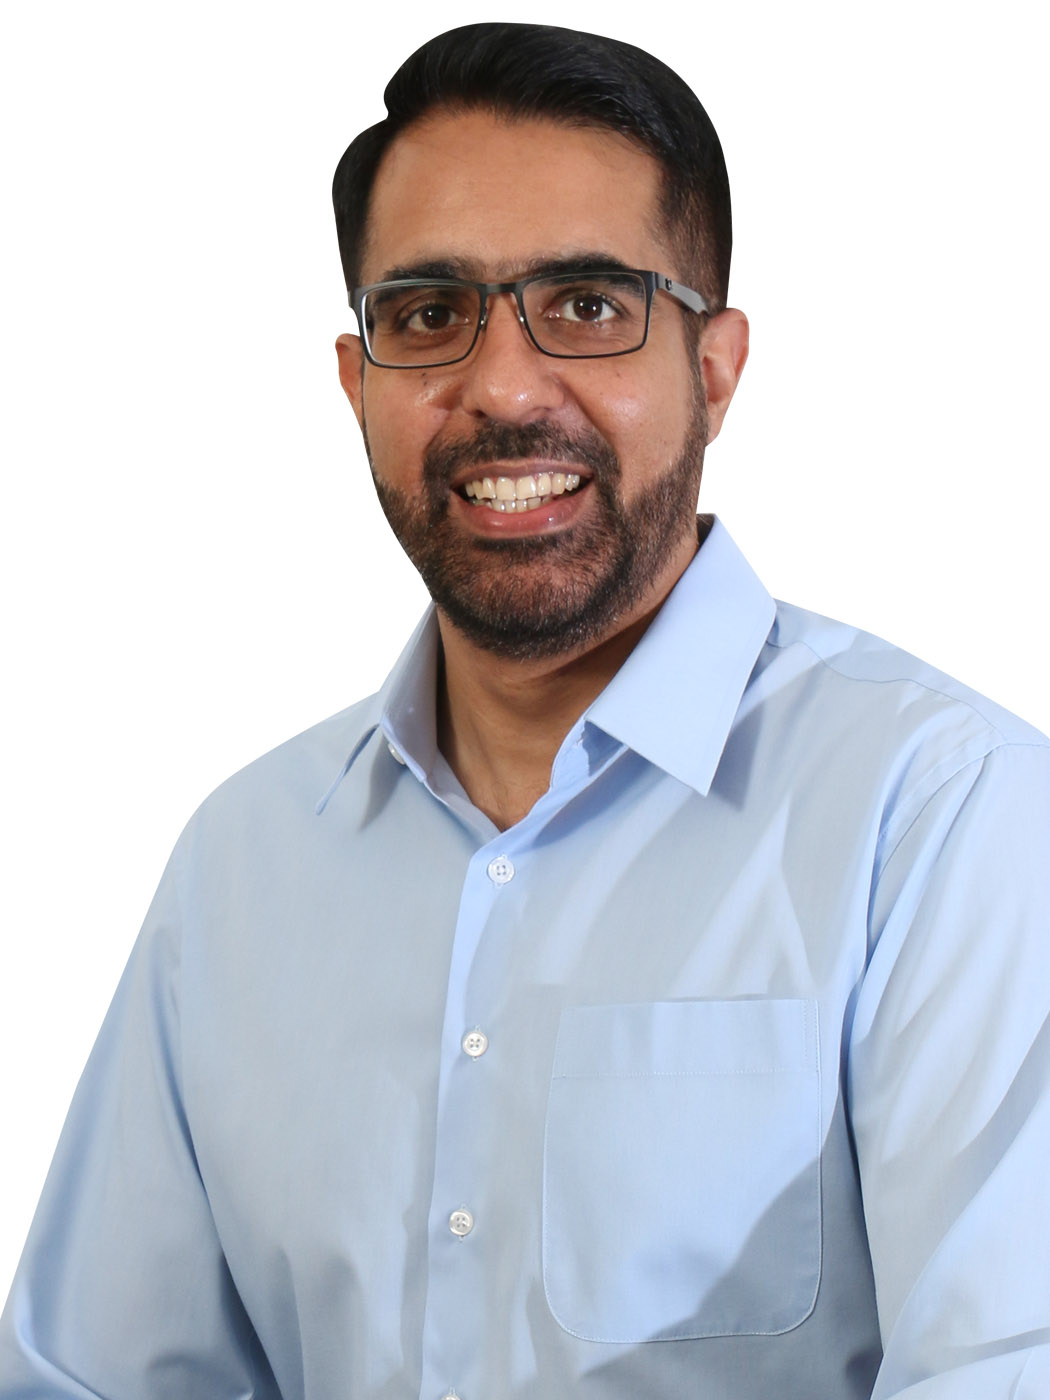 Debate on Remote Gambling Bill – MP Pritam Singh